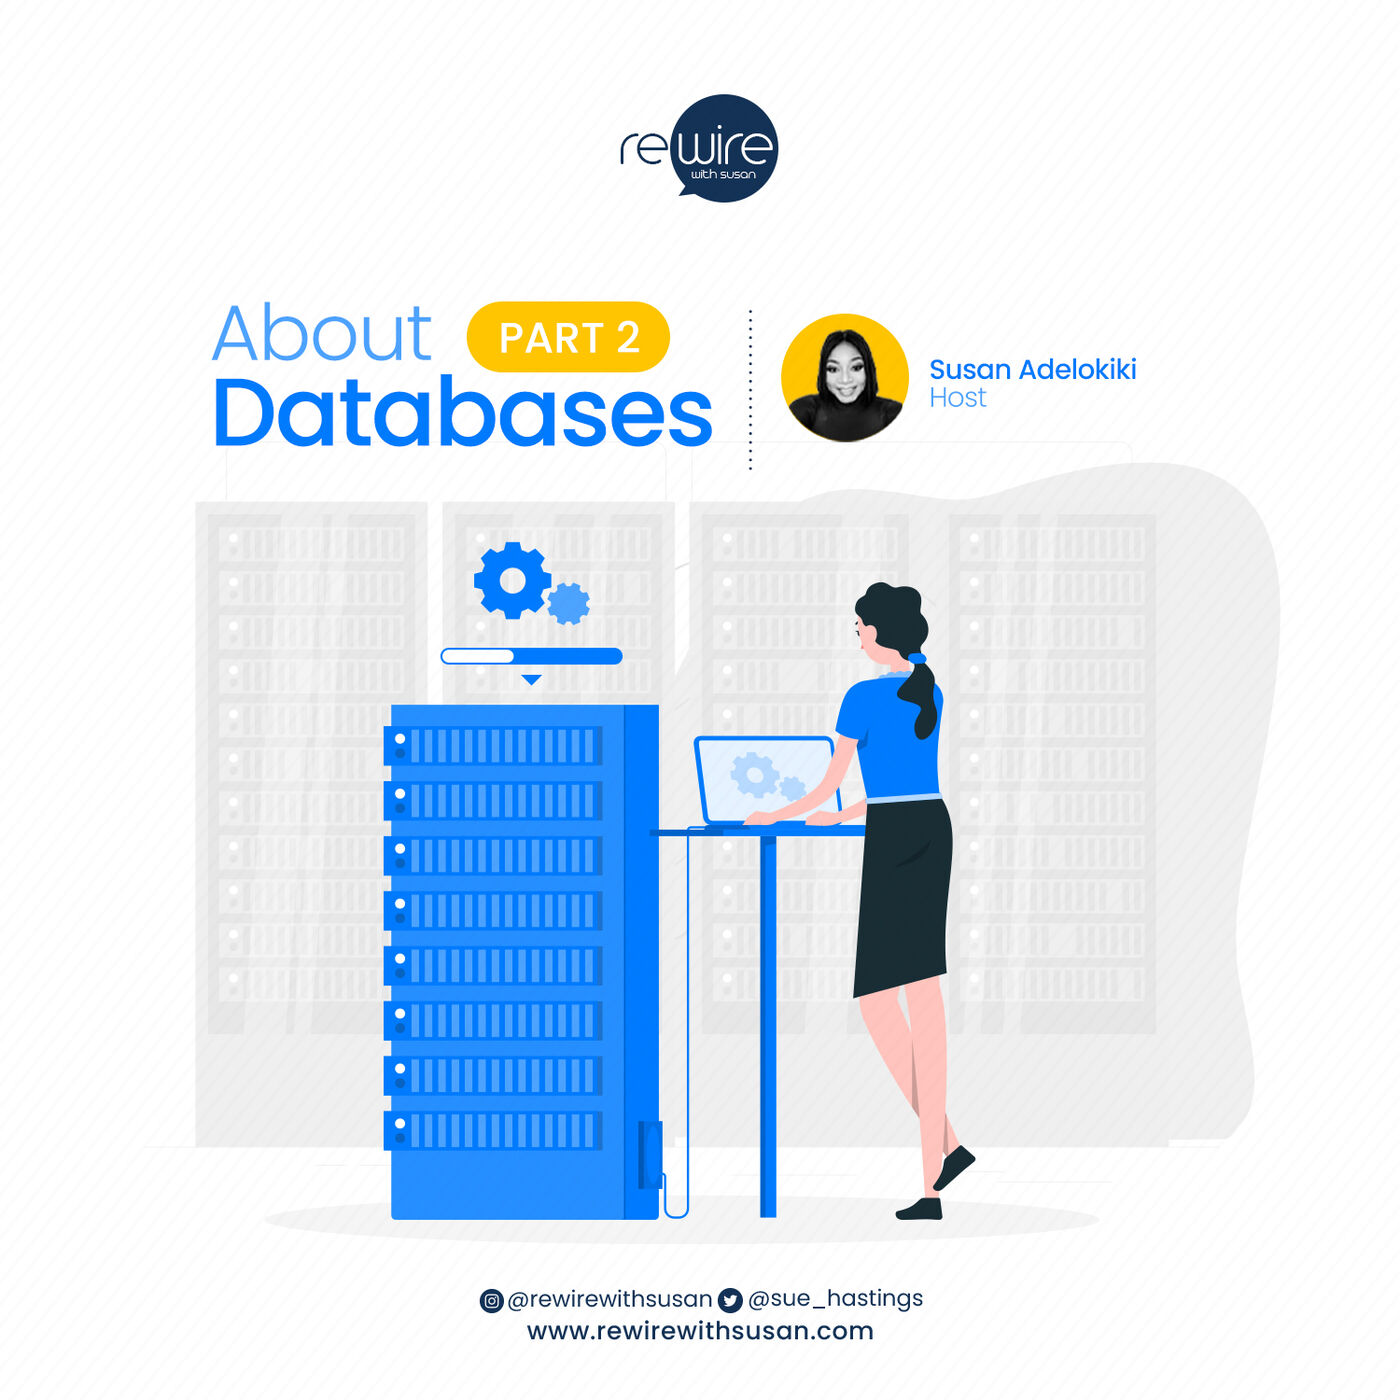 About Databases(Part 2)